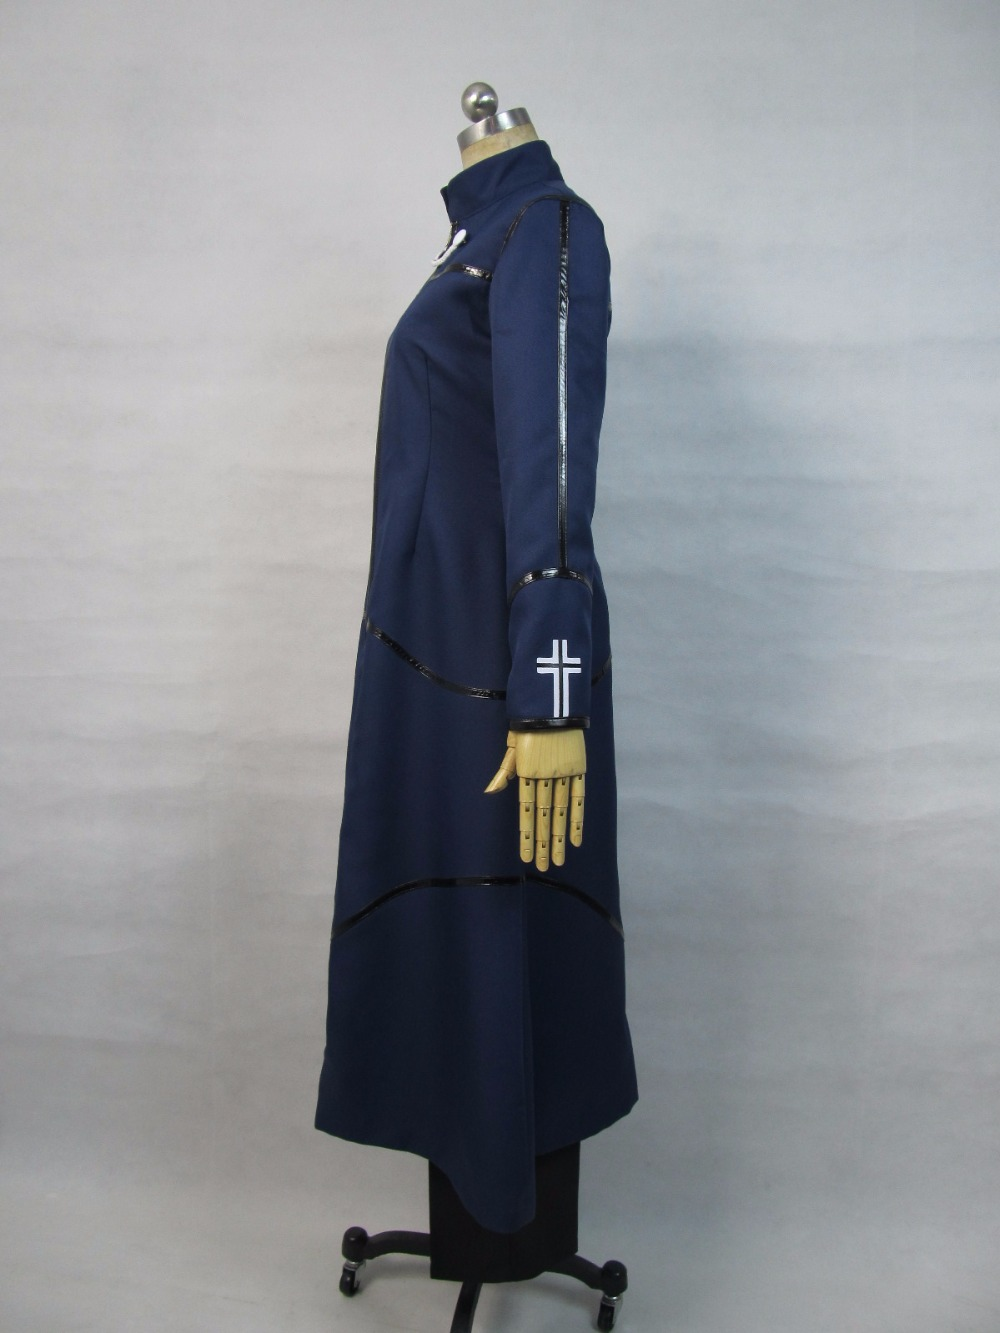 New Arrival Fate Zero Kayneth El-melloi Archibald Cosplay Costume Low Price Costumes & Accessories Women's Costumes